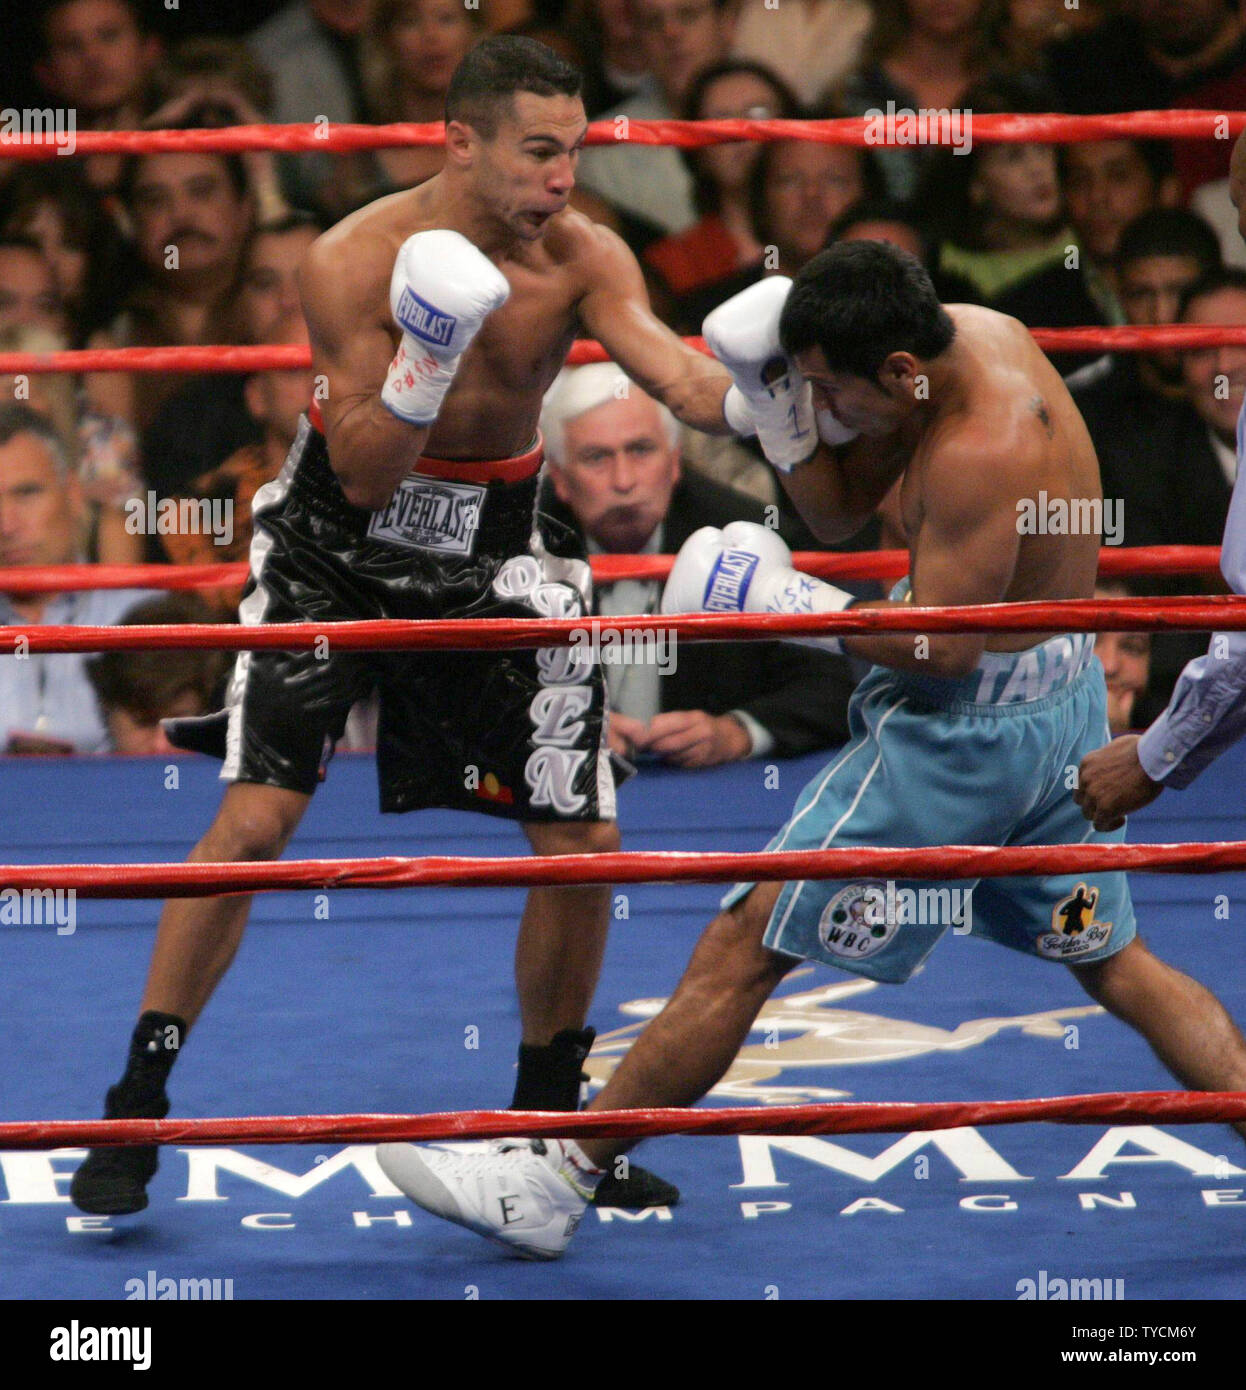 Robbie Peden of Brisbane Australia attacks Marco Antonio Barrera of Mexico City during their fight to consolidate the IBF and WBC world Super Featherweight titles. The fight was won by Barrera at MGM Grand in Las Vegas, NV, September 17, 2005.    (UPI Photo/Roger Williams) - Stock Image